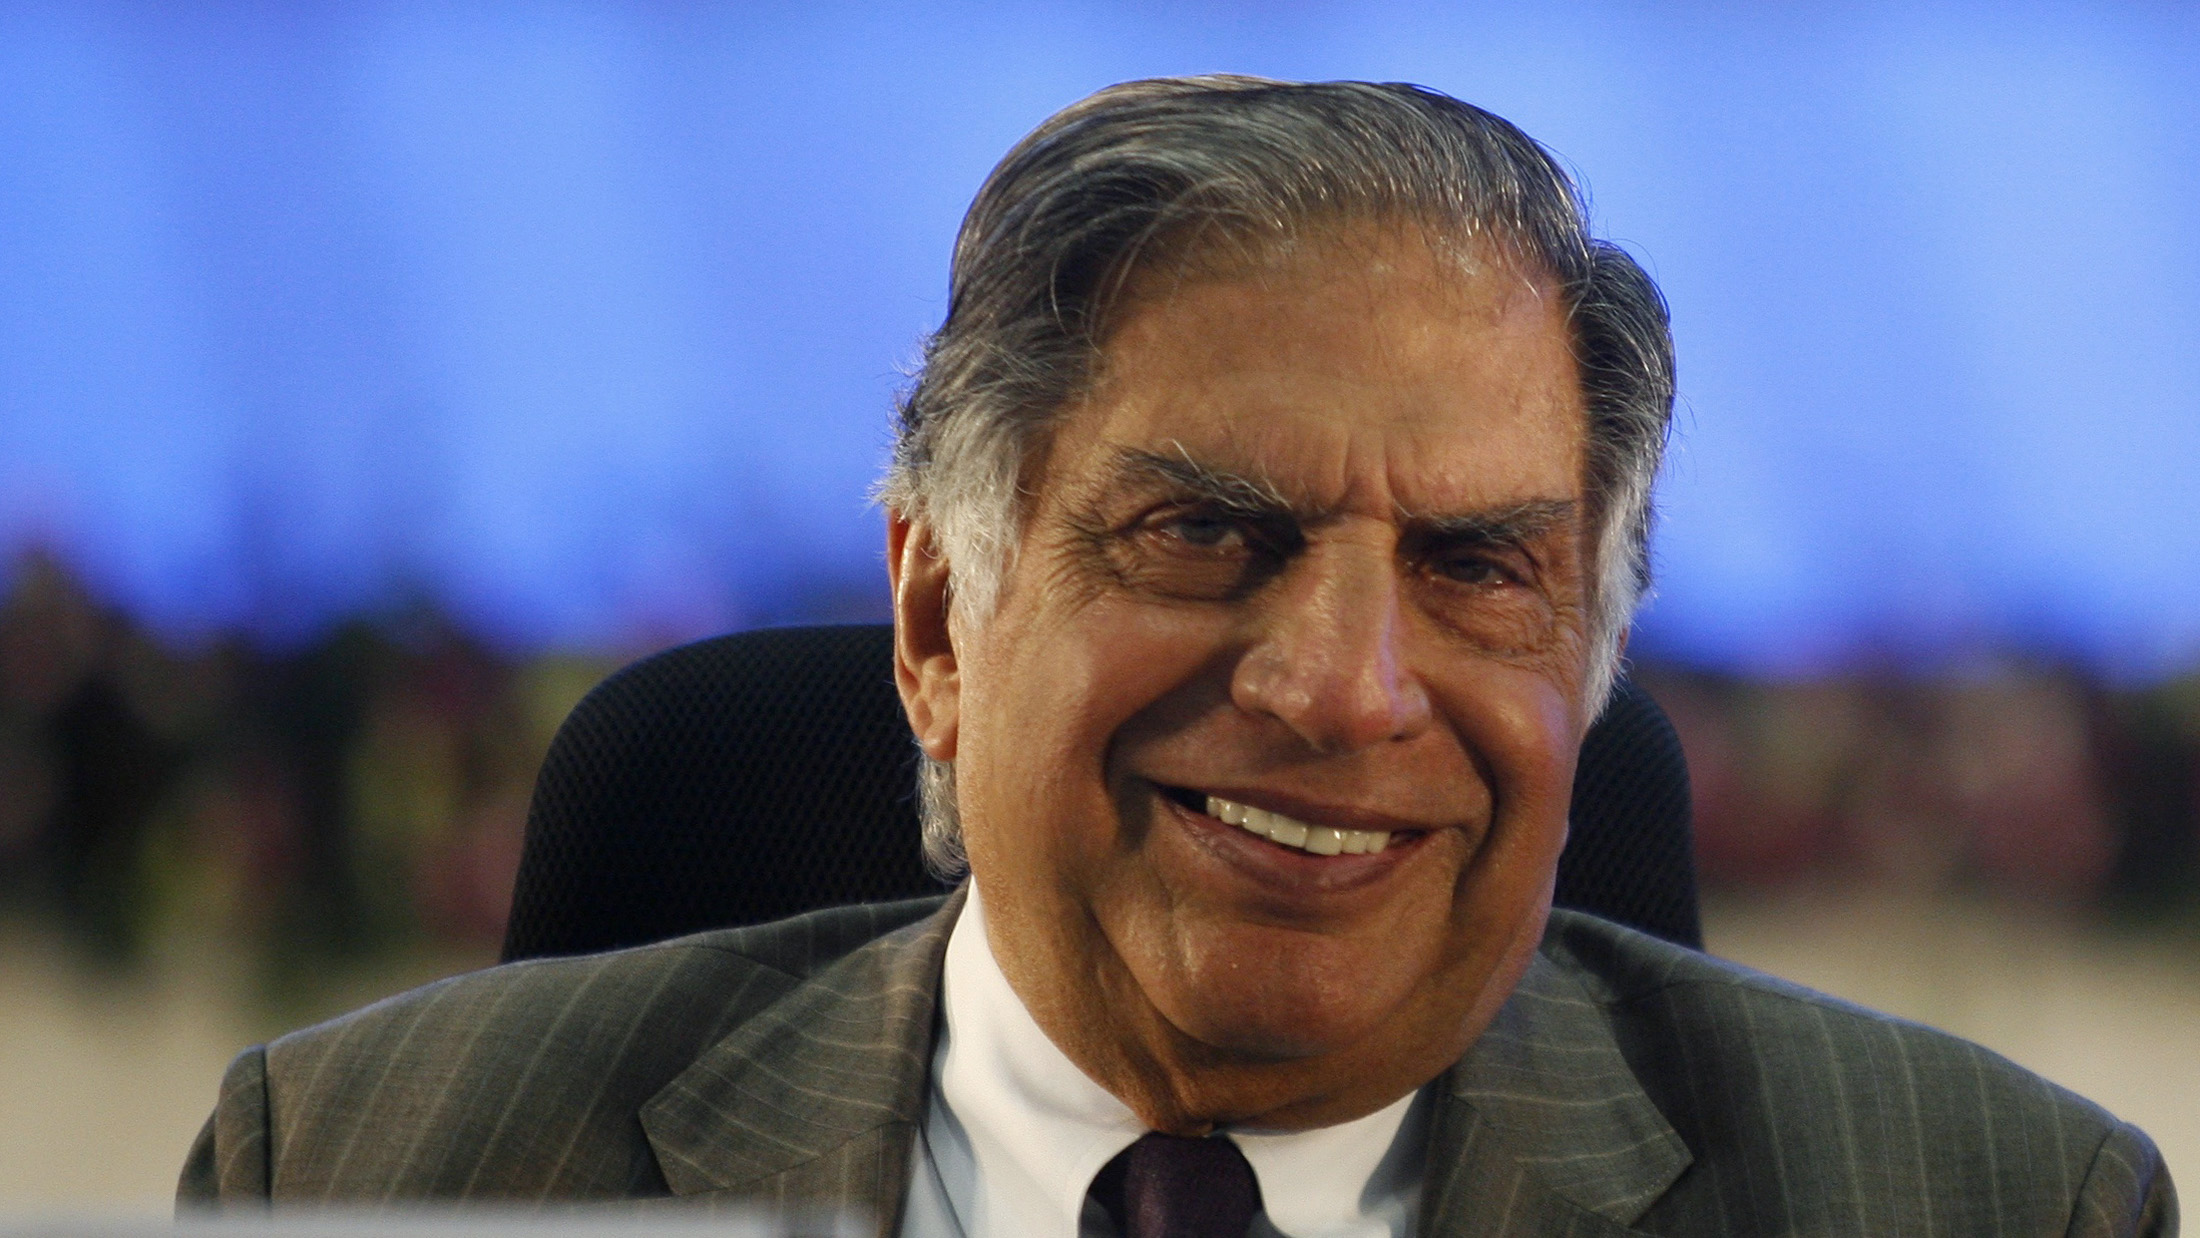 ratan tata Ratan tata will join hundreds of senior executives at this year's gil 2014: india program, and receive the firm's 2014 gil award entering into the gil community's hall of fame joining an elite roster of visionaries, innovators and leaders including archbishop desmond tutu, sir richard branson, mitchell baker, jack andraka, marc benioff, steve woods, and judy estrin, among others.